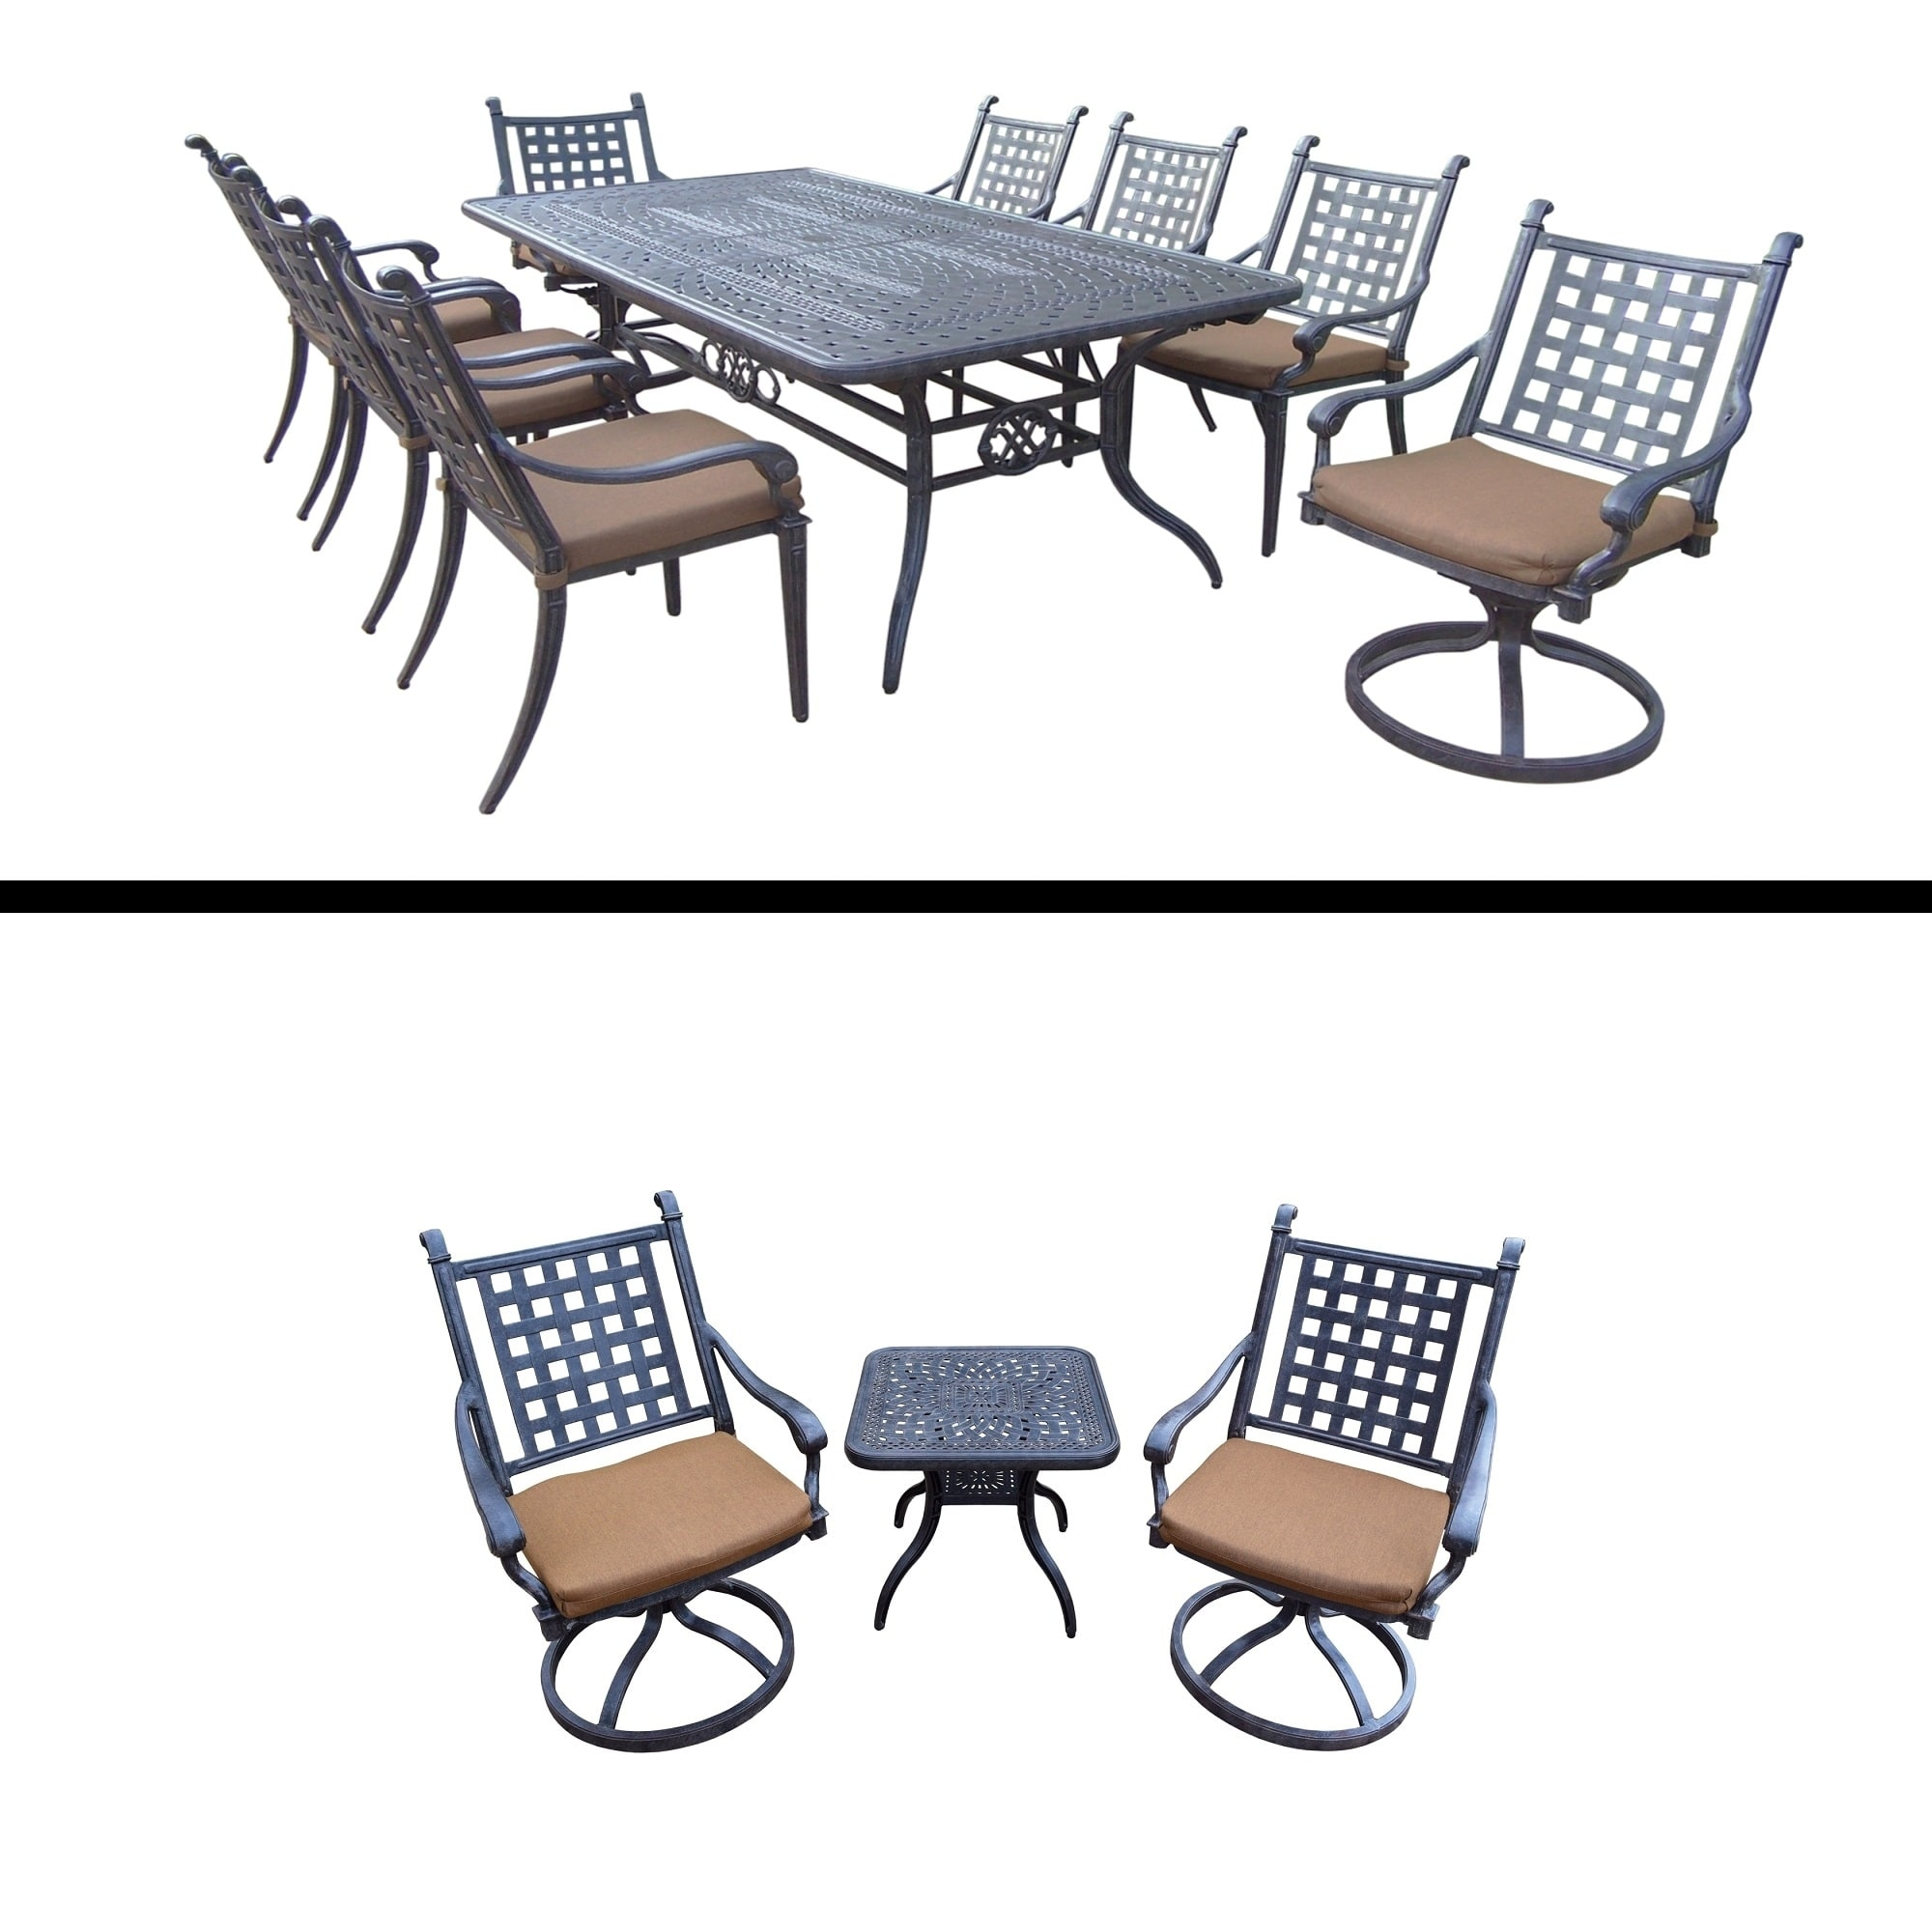 Oakland Living 9 Pc Rectangular Dining Room Set with Table, 6 Chairs, 2 Swivel Rockers, 3 Pc Chat Set with 2 Swivel Rock by Overstock